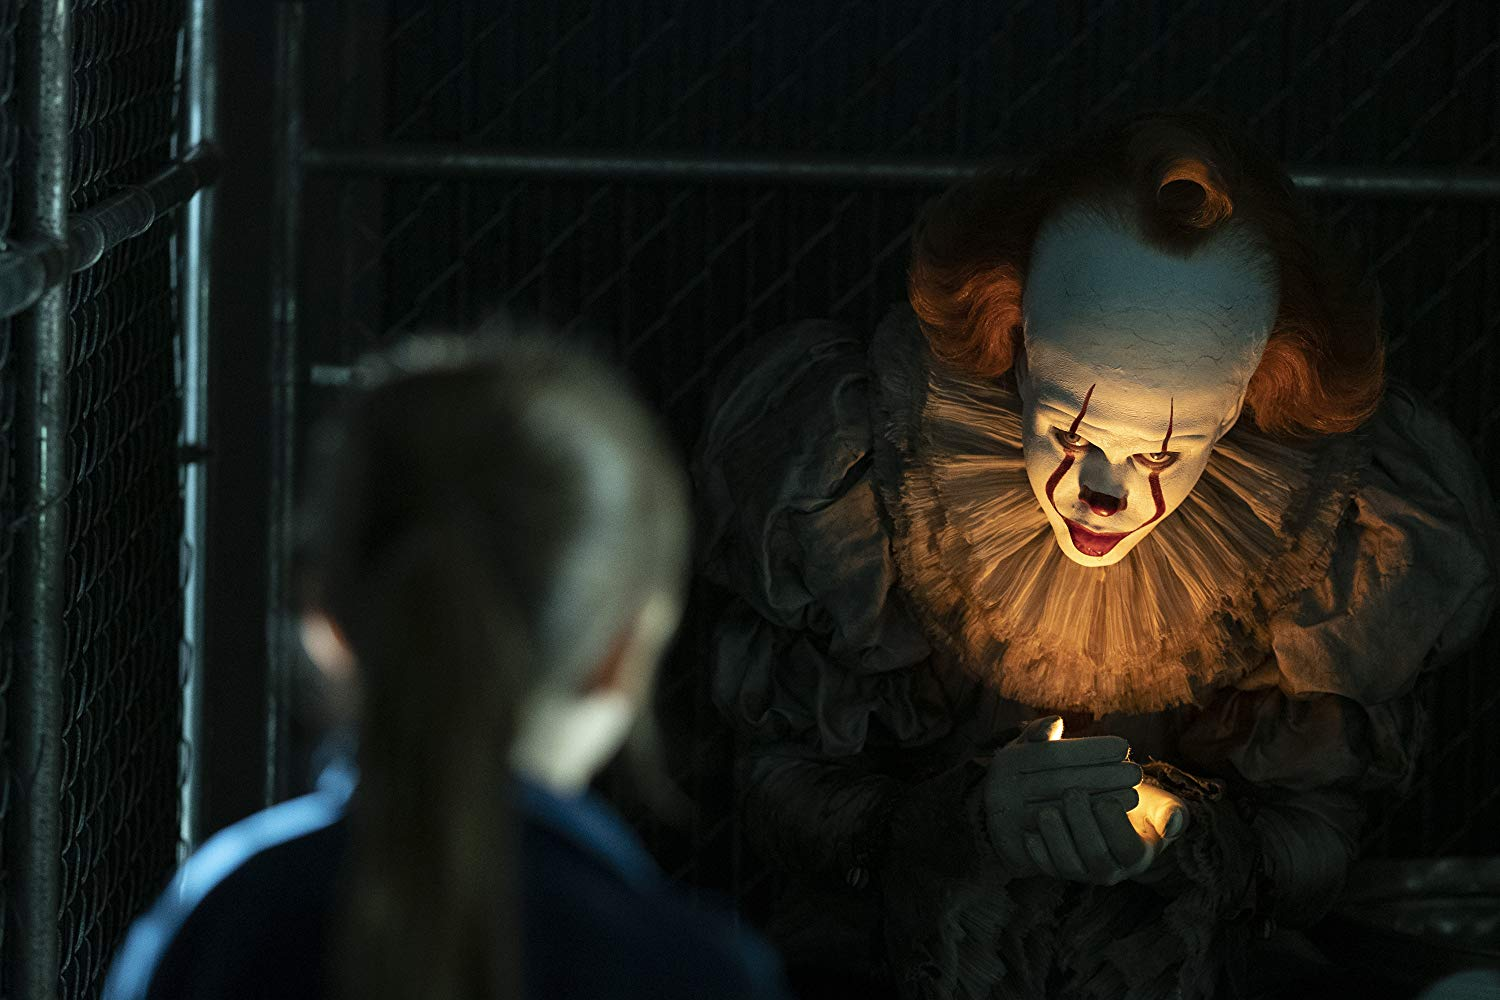 Is 'It Chapter Two' As Good A Movie As Its Predecessor, Or Does The Sequel Lose Its Way? Here's What The Reviews Say